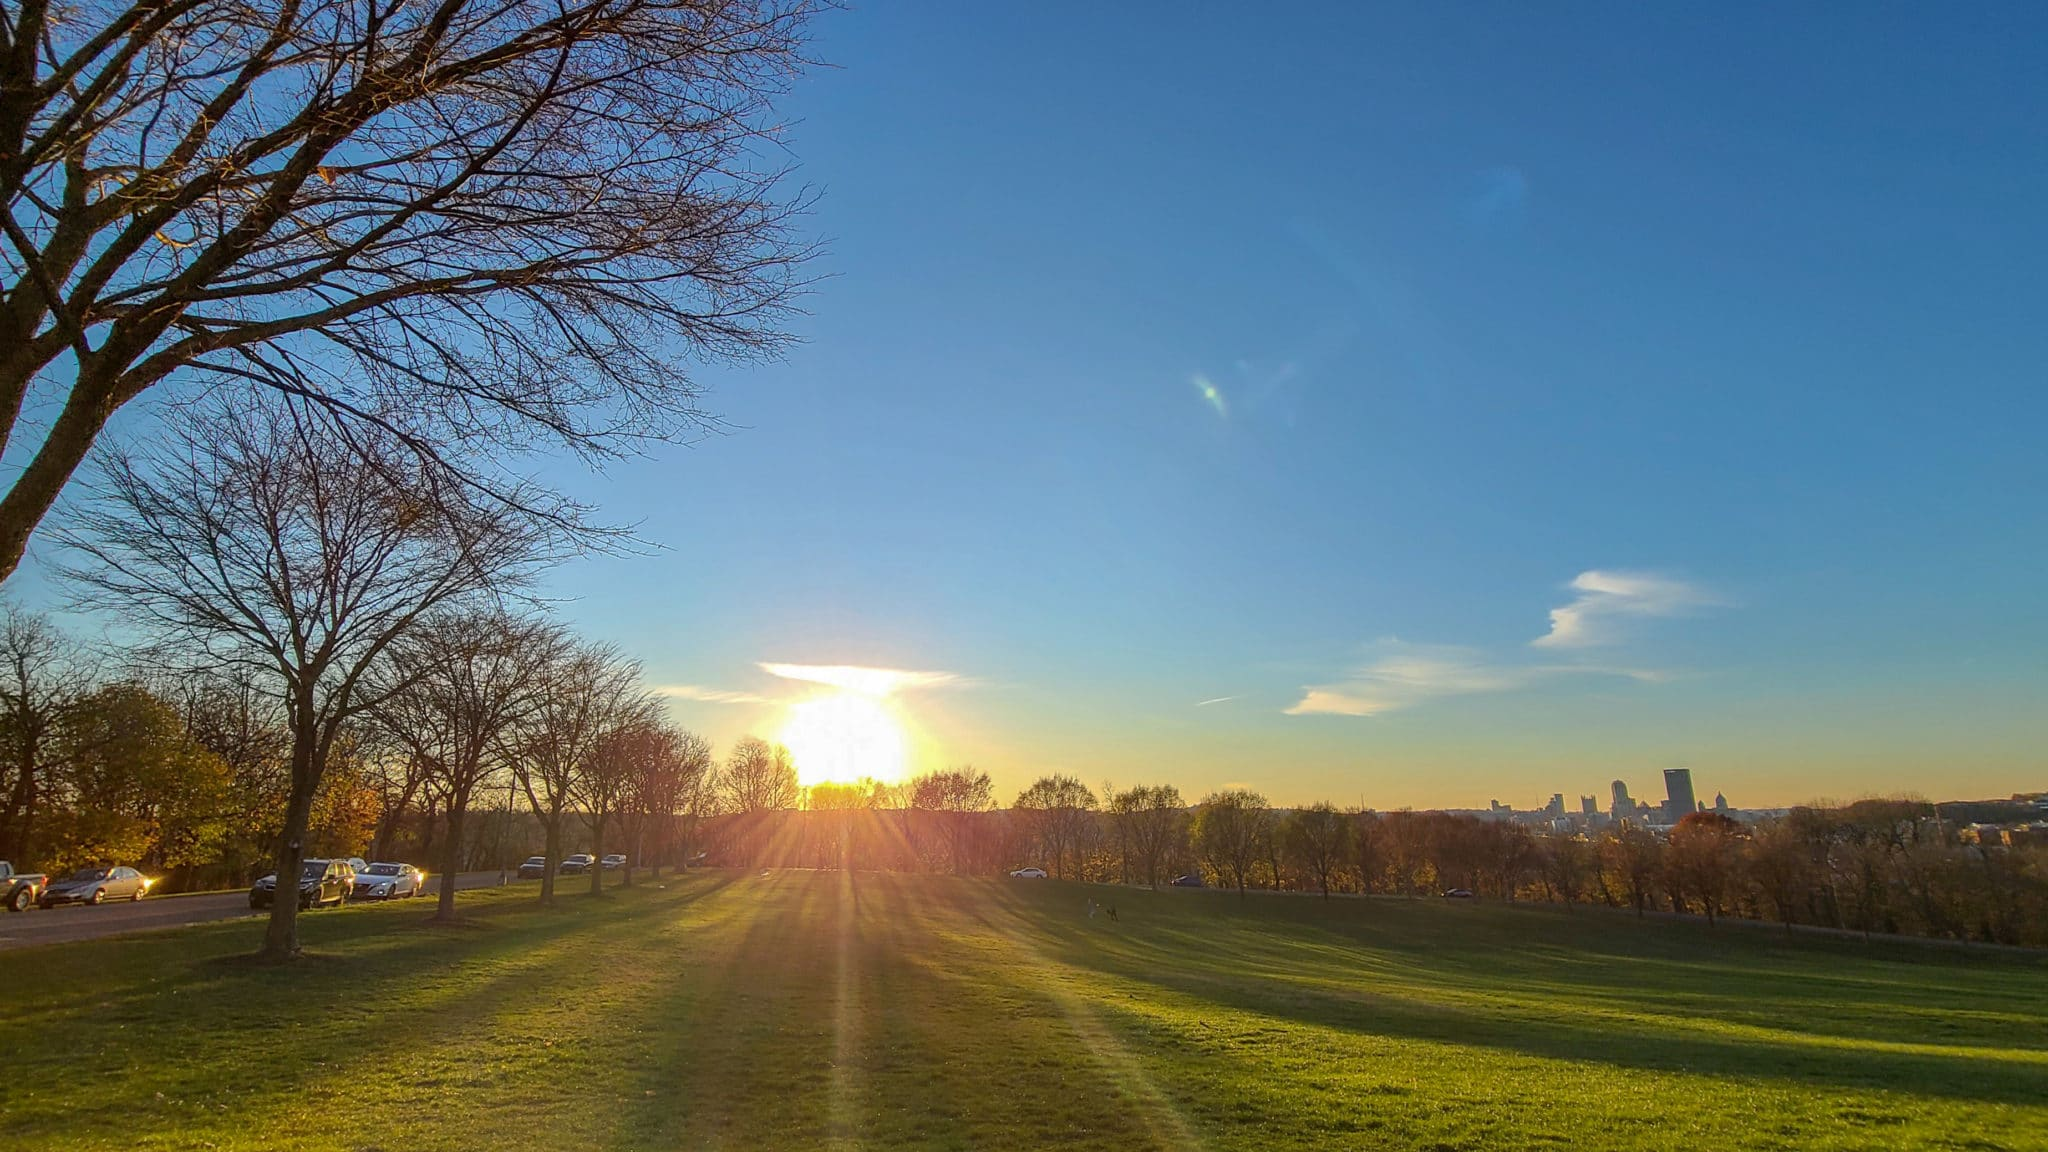 Image of Schenley Park with the sun setting behind it